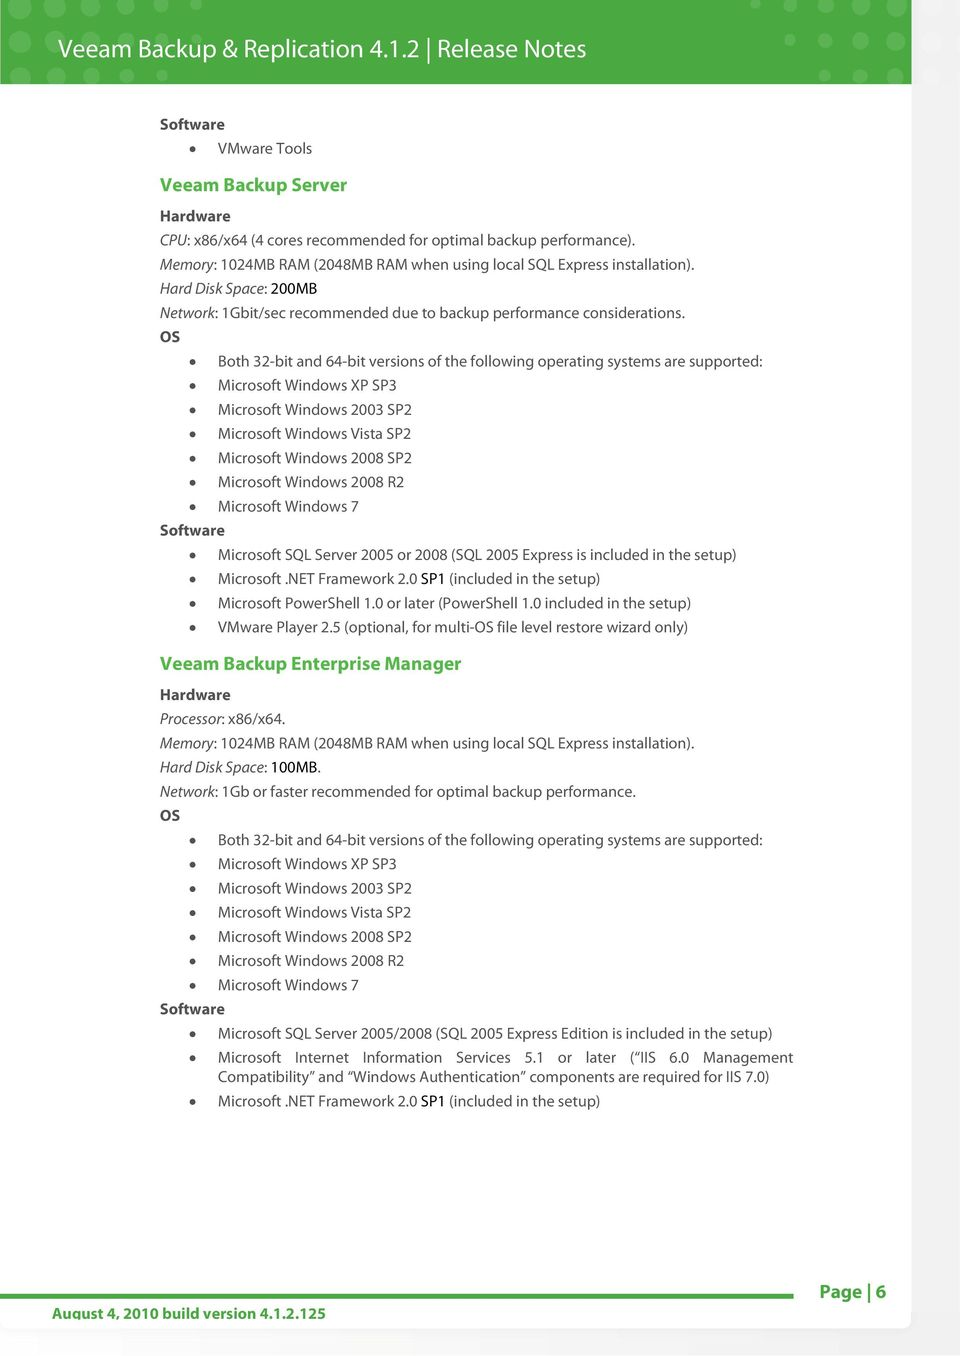 VEEAM BACKUP & REPLICATION RELEASE NOTES - PDF